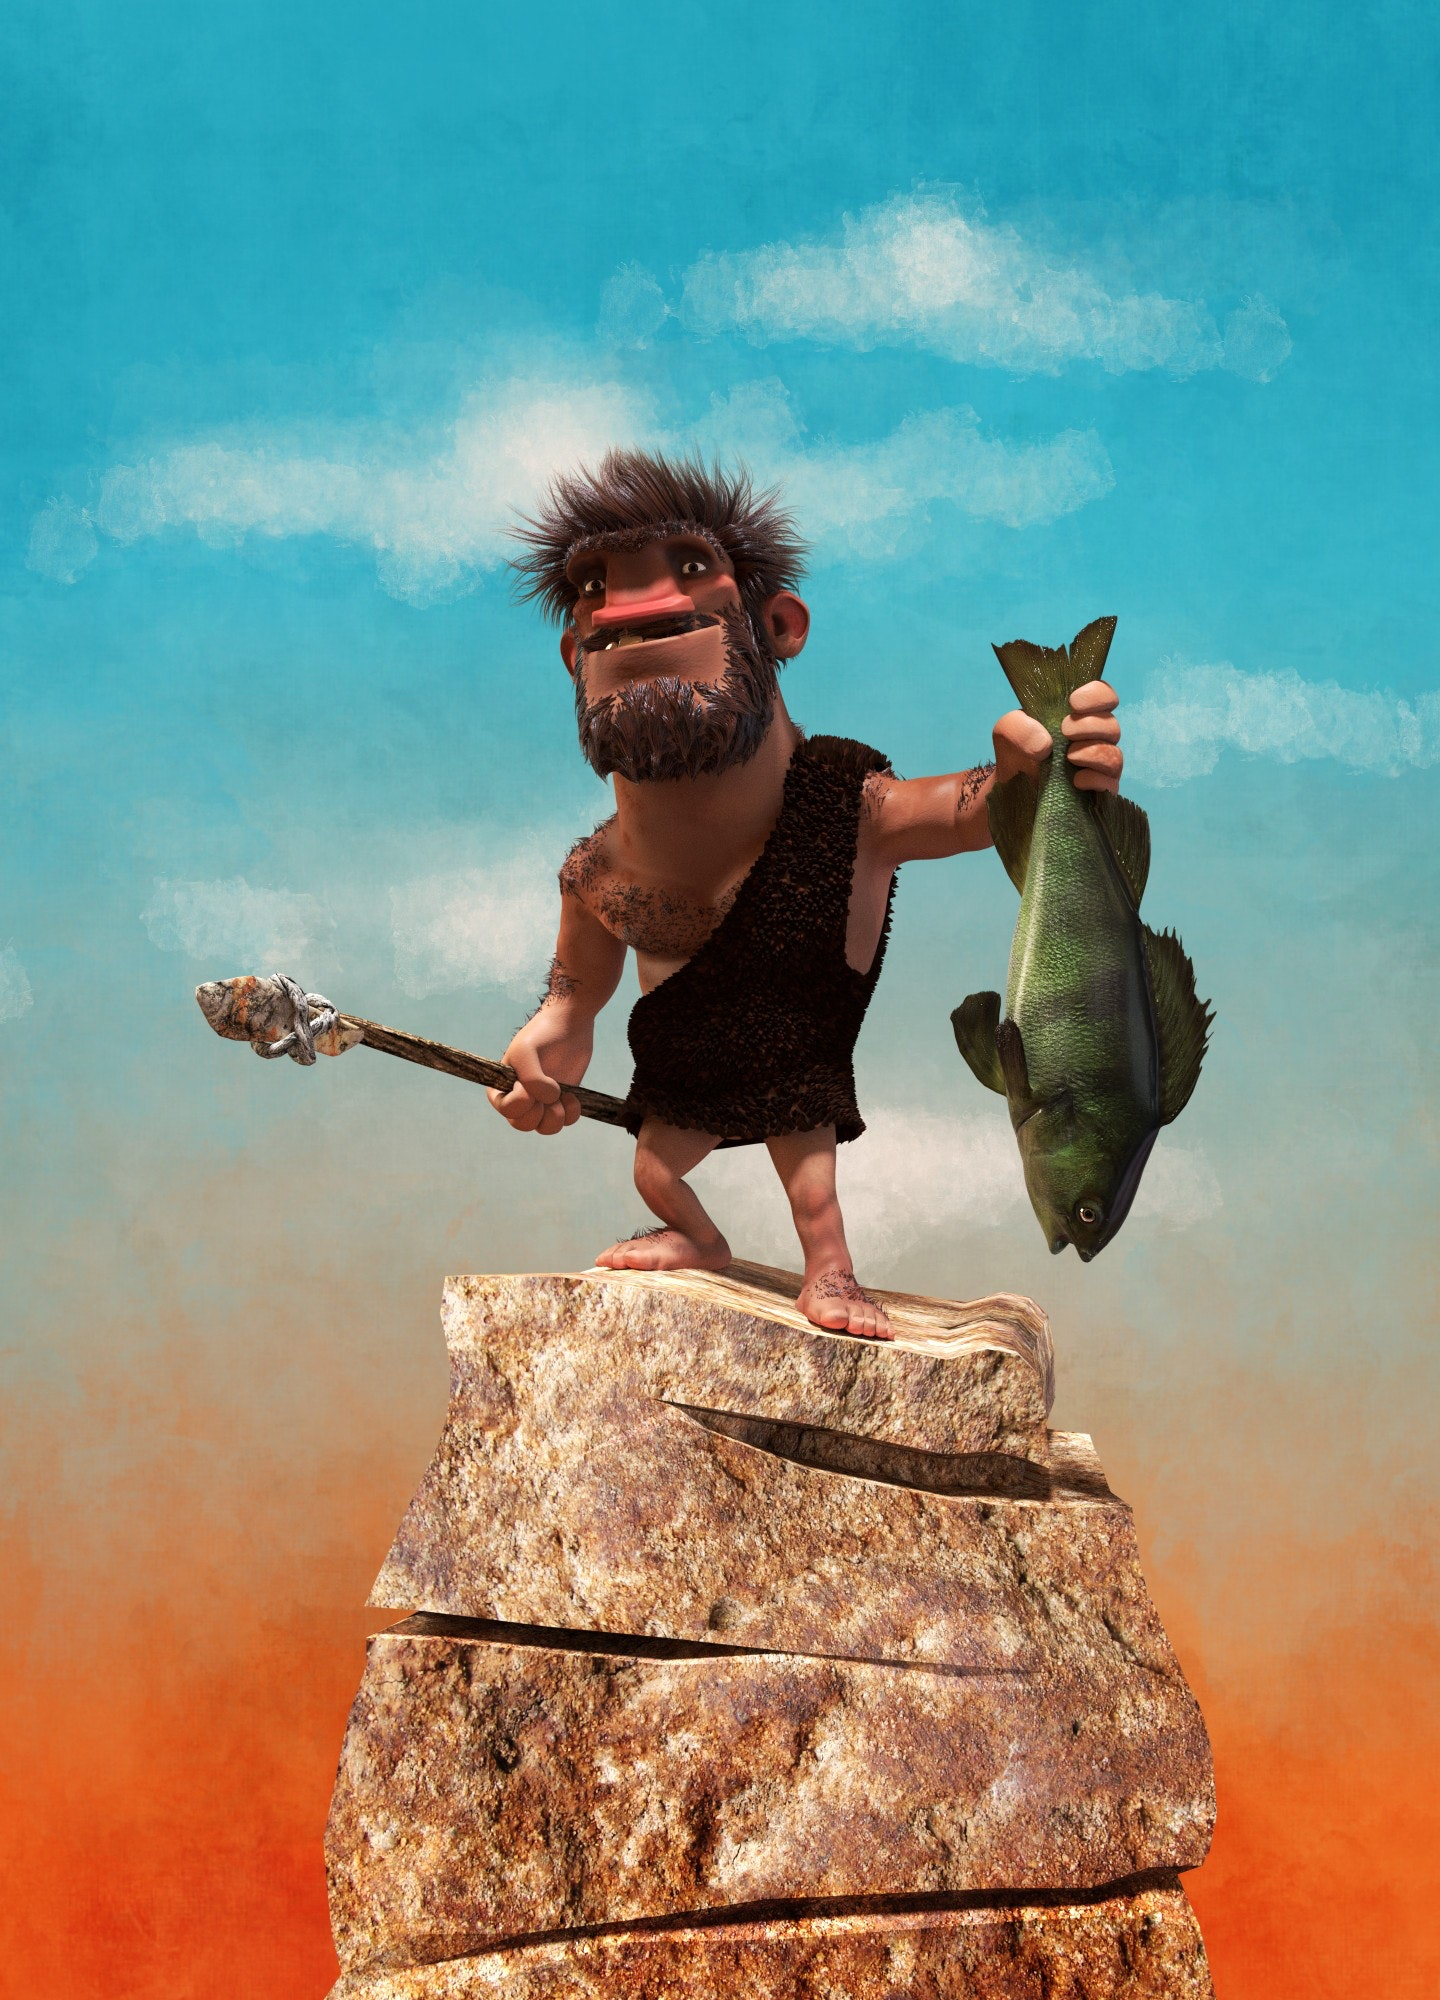 A 3D model of a caveman fishing character